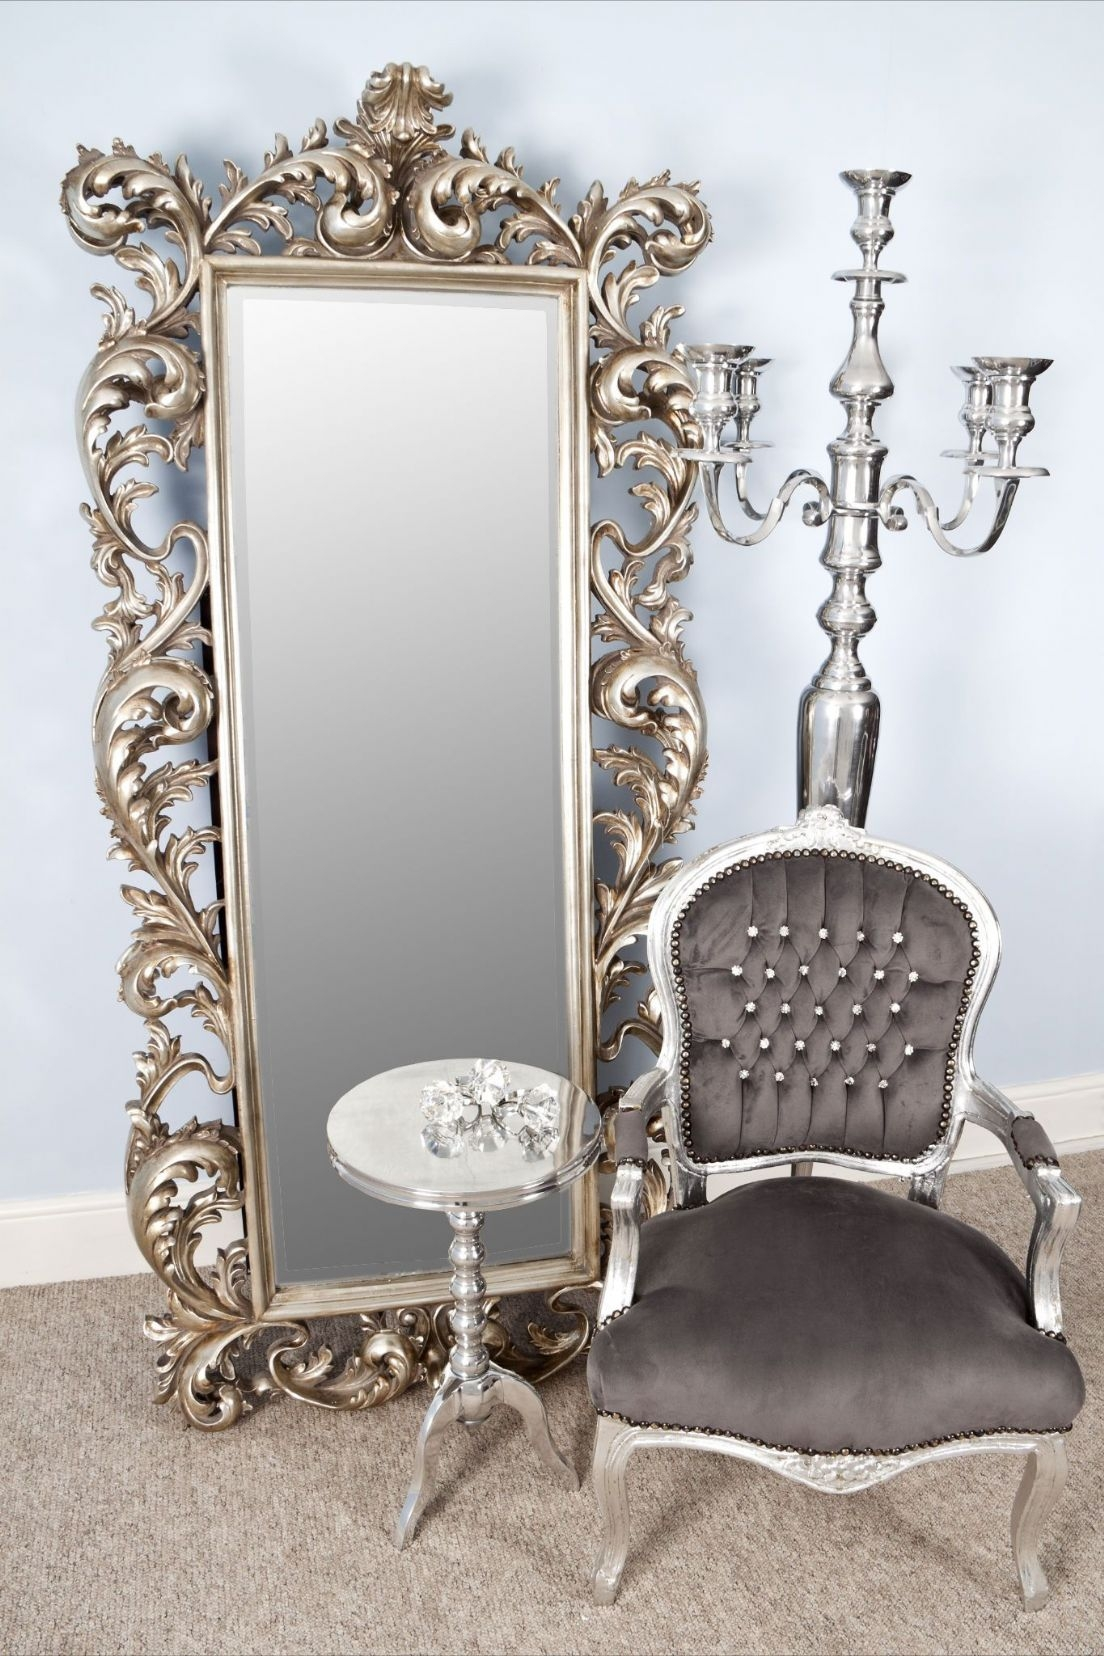 Rococo Mirrors Exclusive Mirrors Pertaining To Old Fashioned Mirrors For Sale (Image 14 of 15)